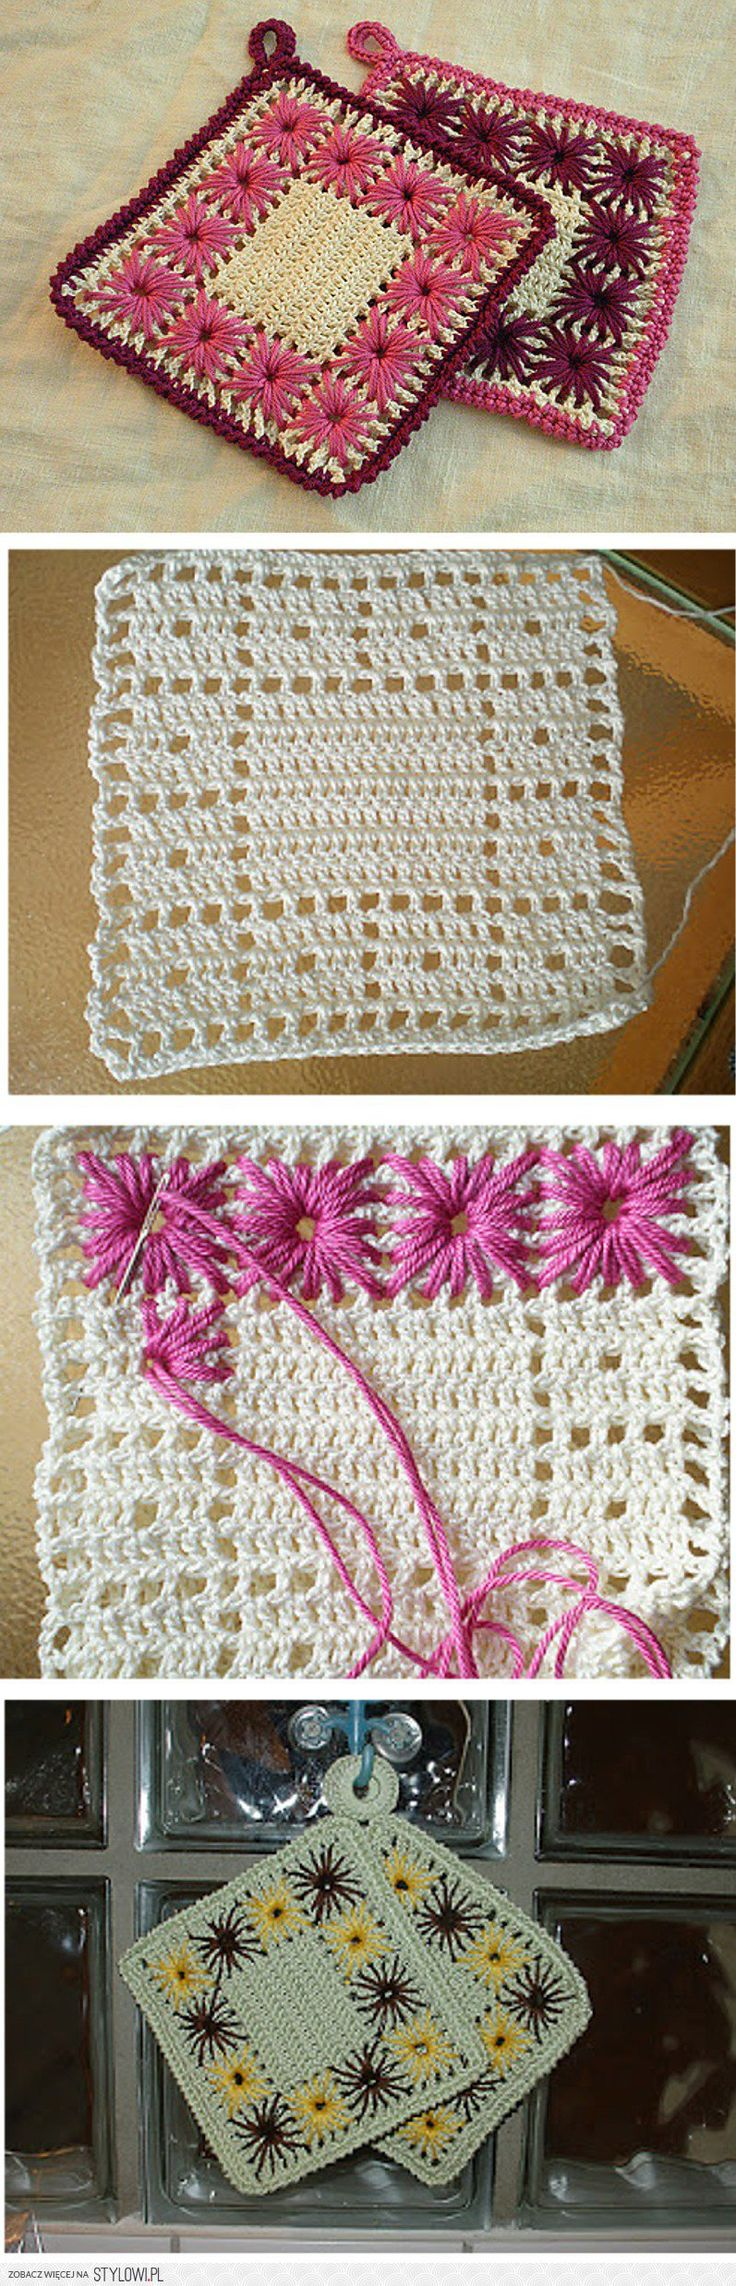 #crochet #potholder